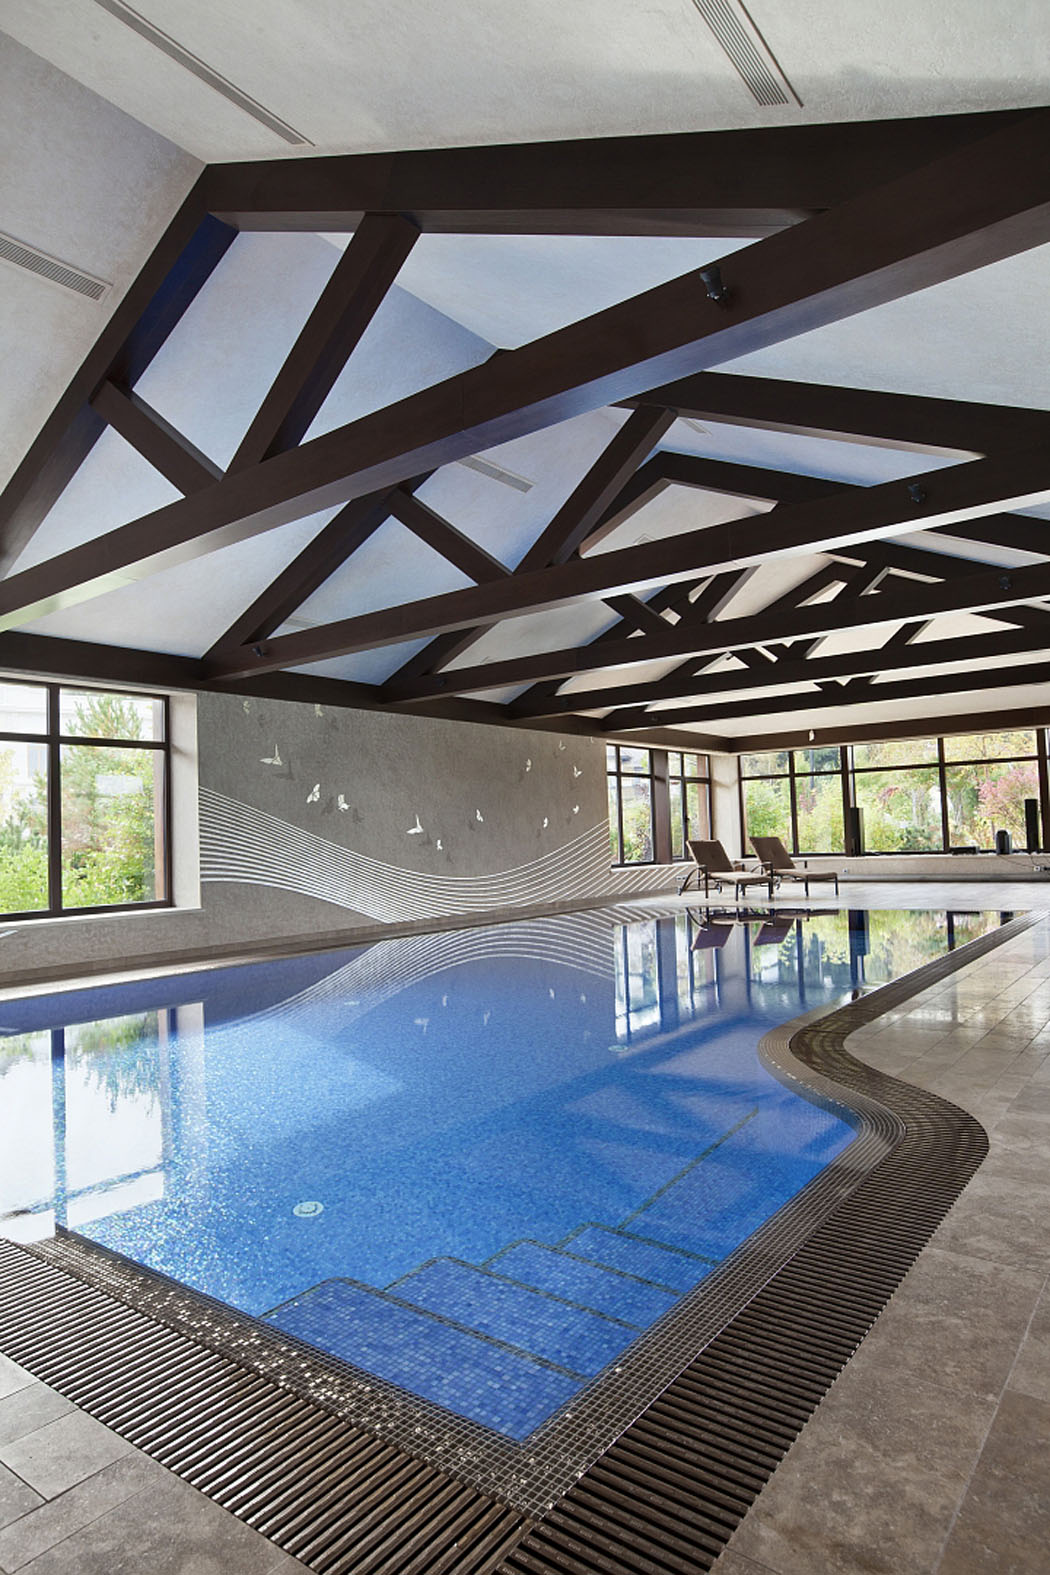 Belle et spacieuse r sidence de grand standing pr s de for Piscine d interieur